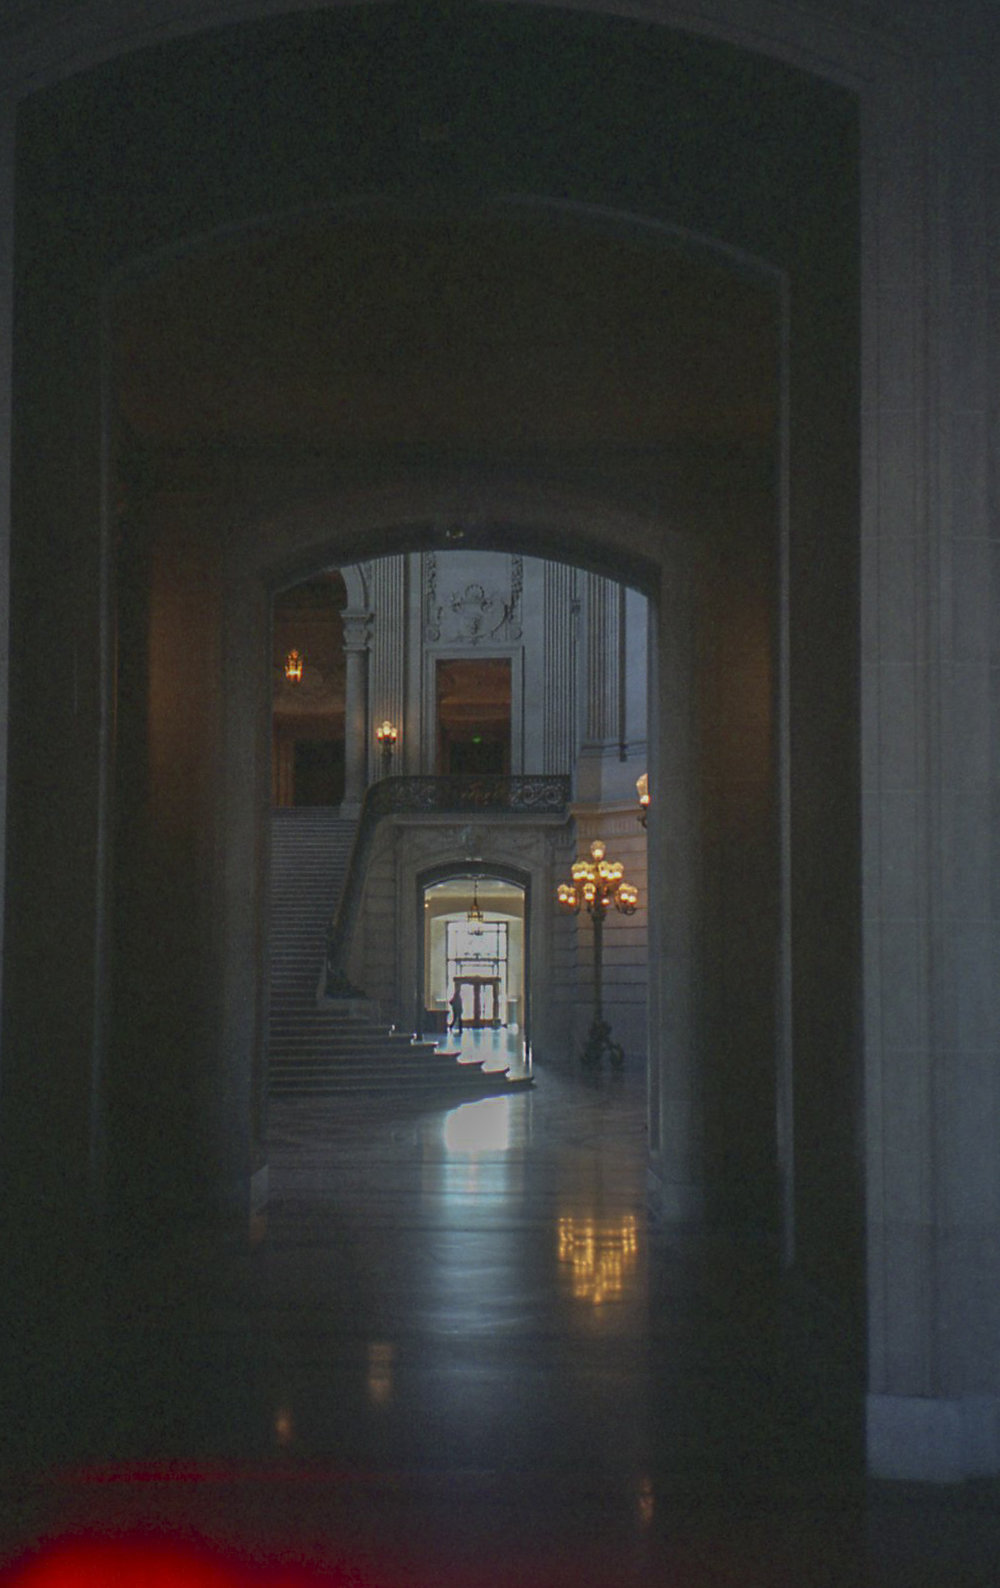 this is a photo of the inside of sf city hall. the two photos above this and the one below are also from city hall. what a beautiful building. this is one of my favorite photos from this trip.